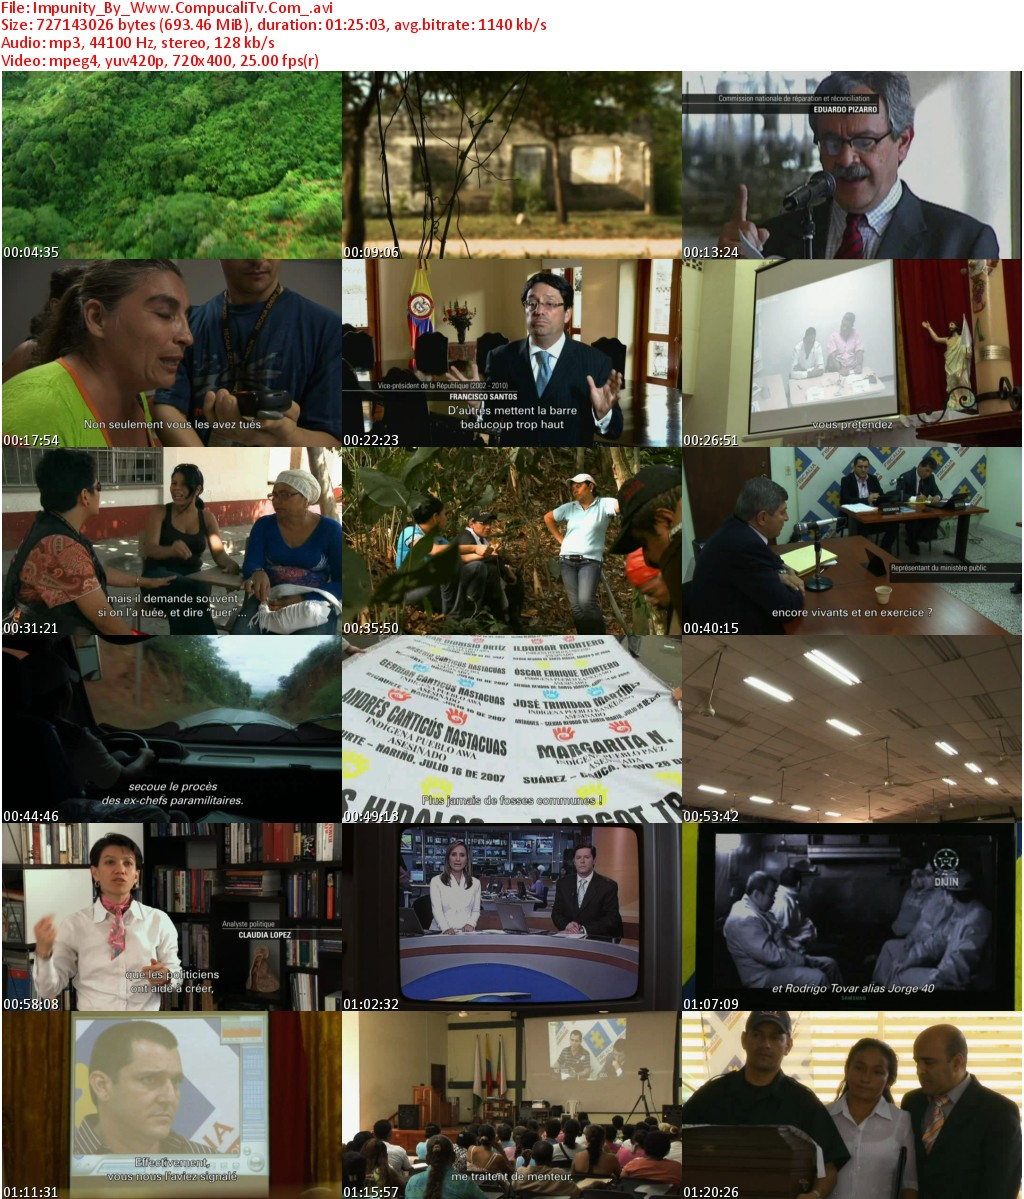 Impunity Documetal Colombiano DVDRip [Español Latino] Descarga 1 Link